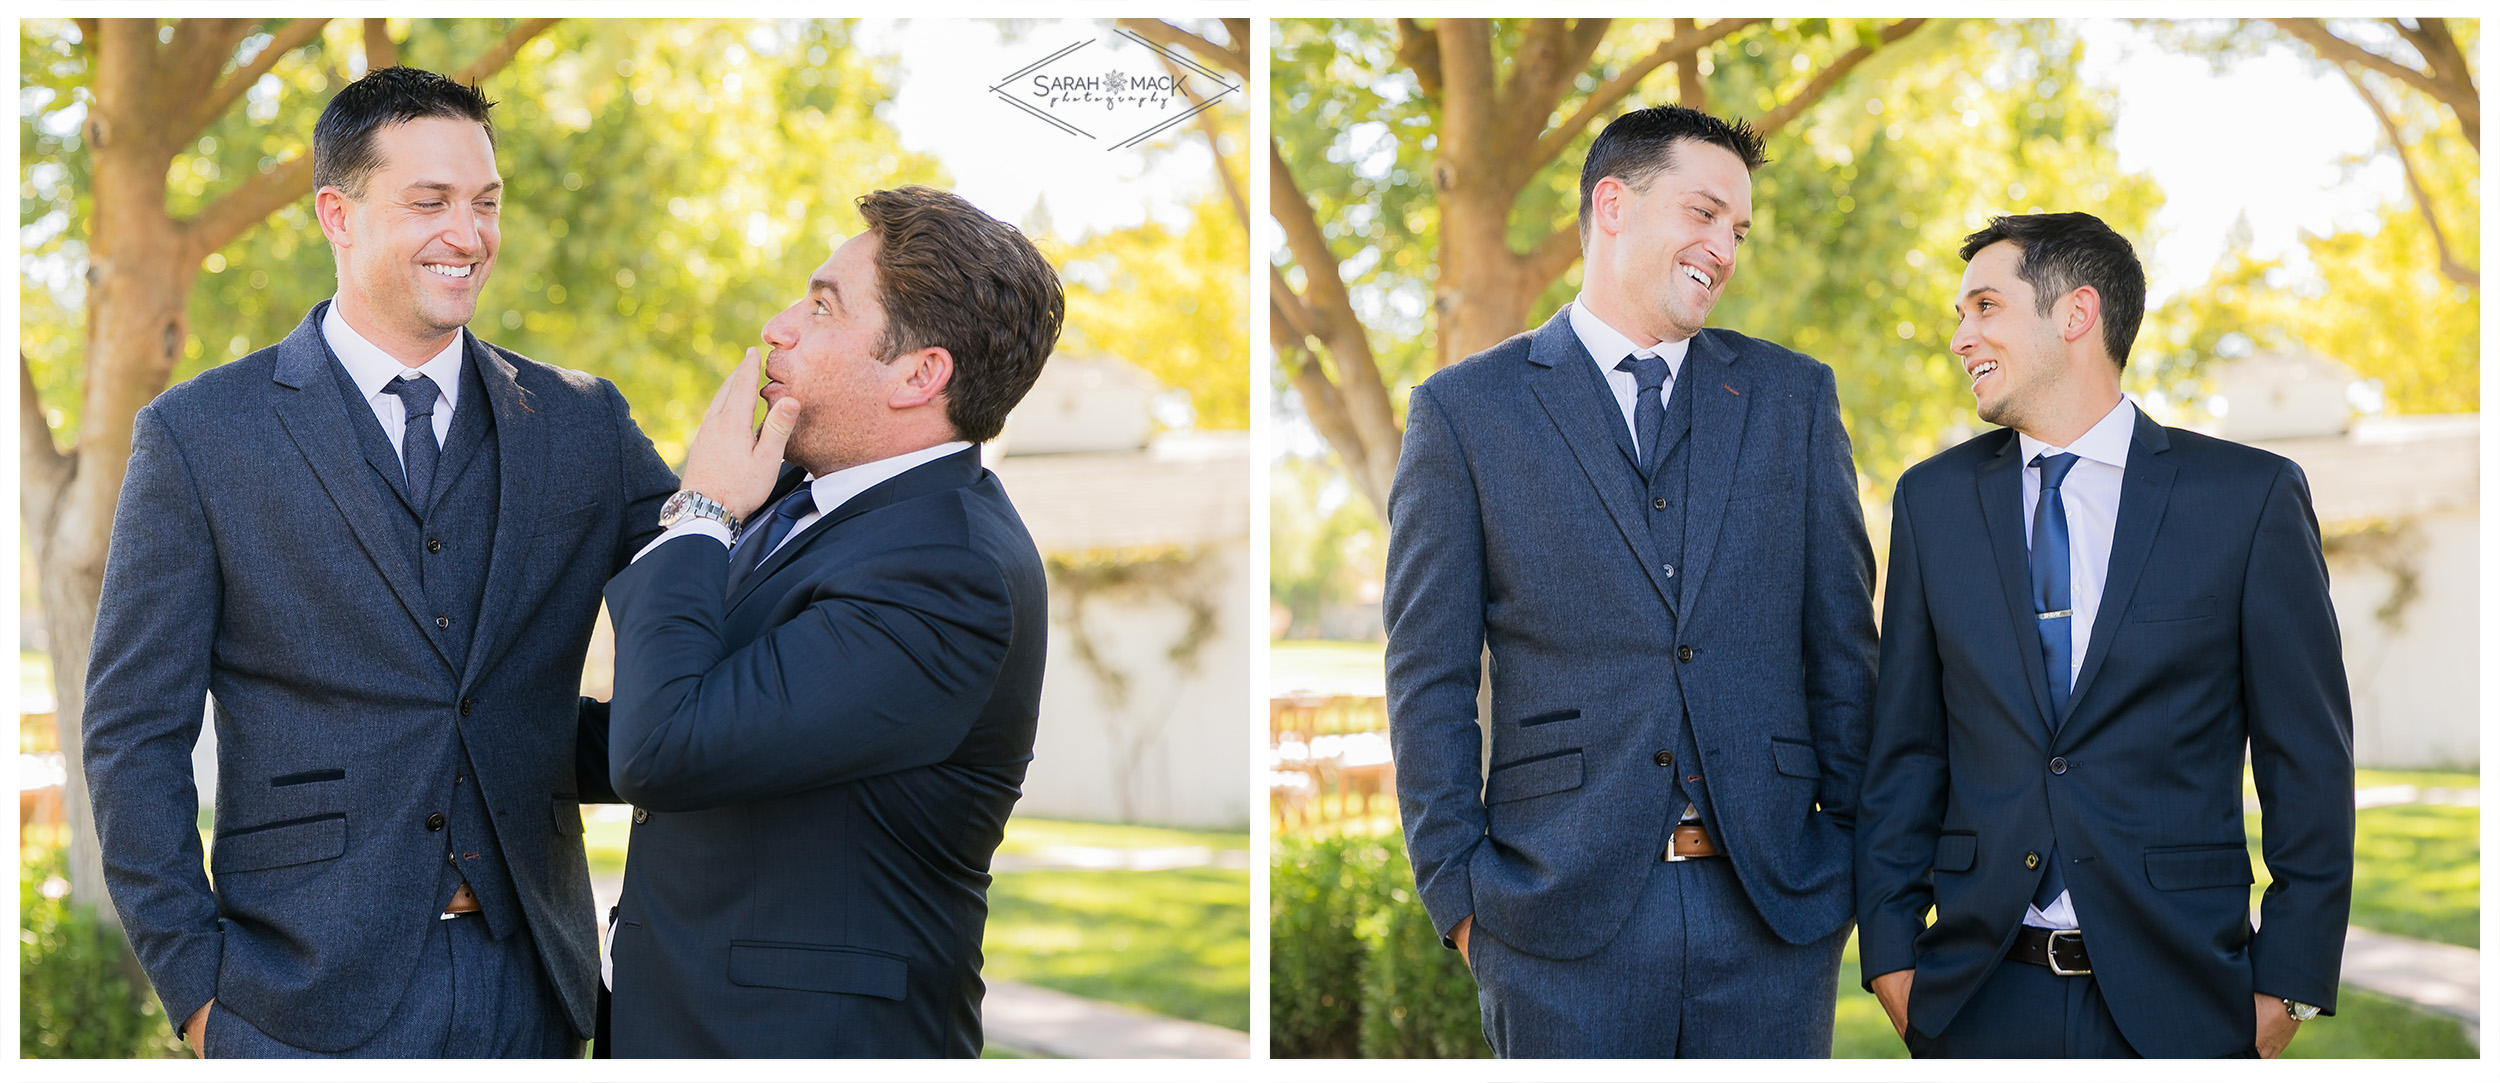 MA-Chandler-Ranch-Paso-Robles-Wedding-Photography-56.jpg